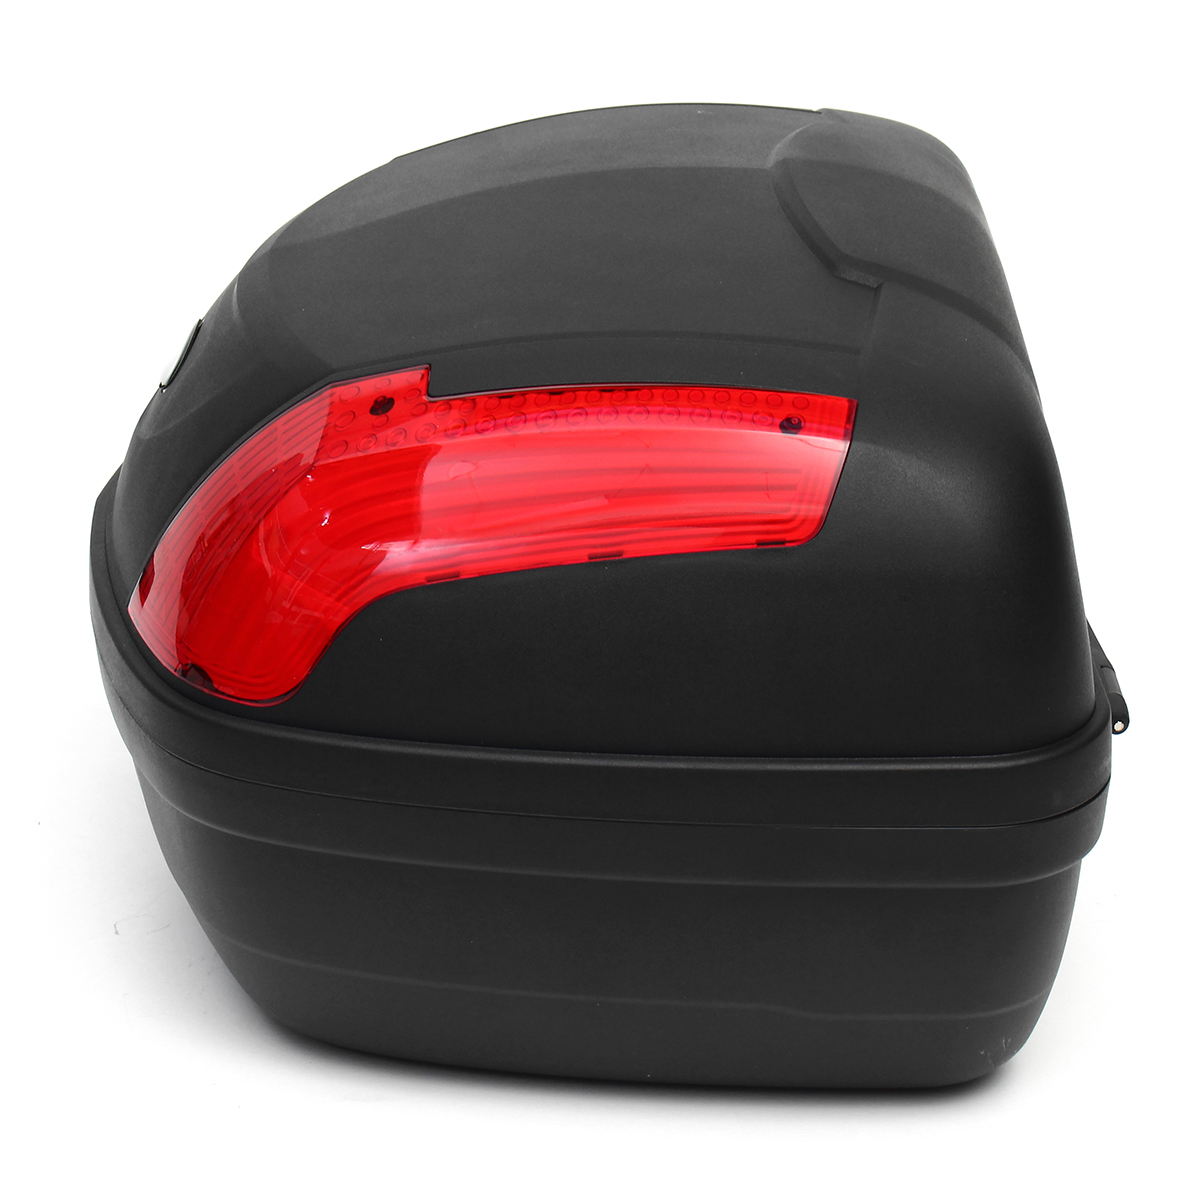 52L Secure Latch Black Motorcycle Scooter Topbox Rear Storage Luggage Top Box